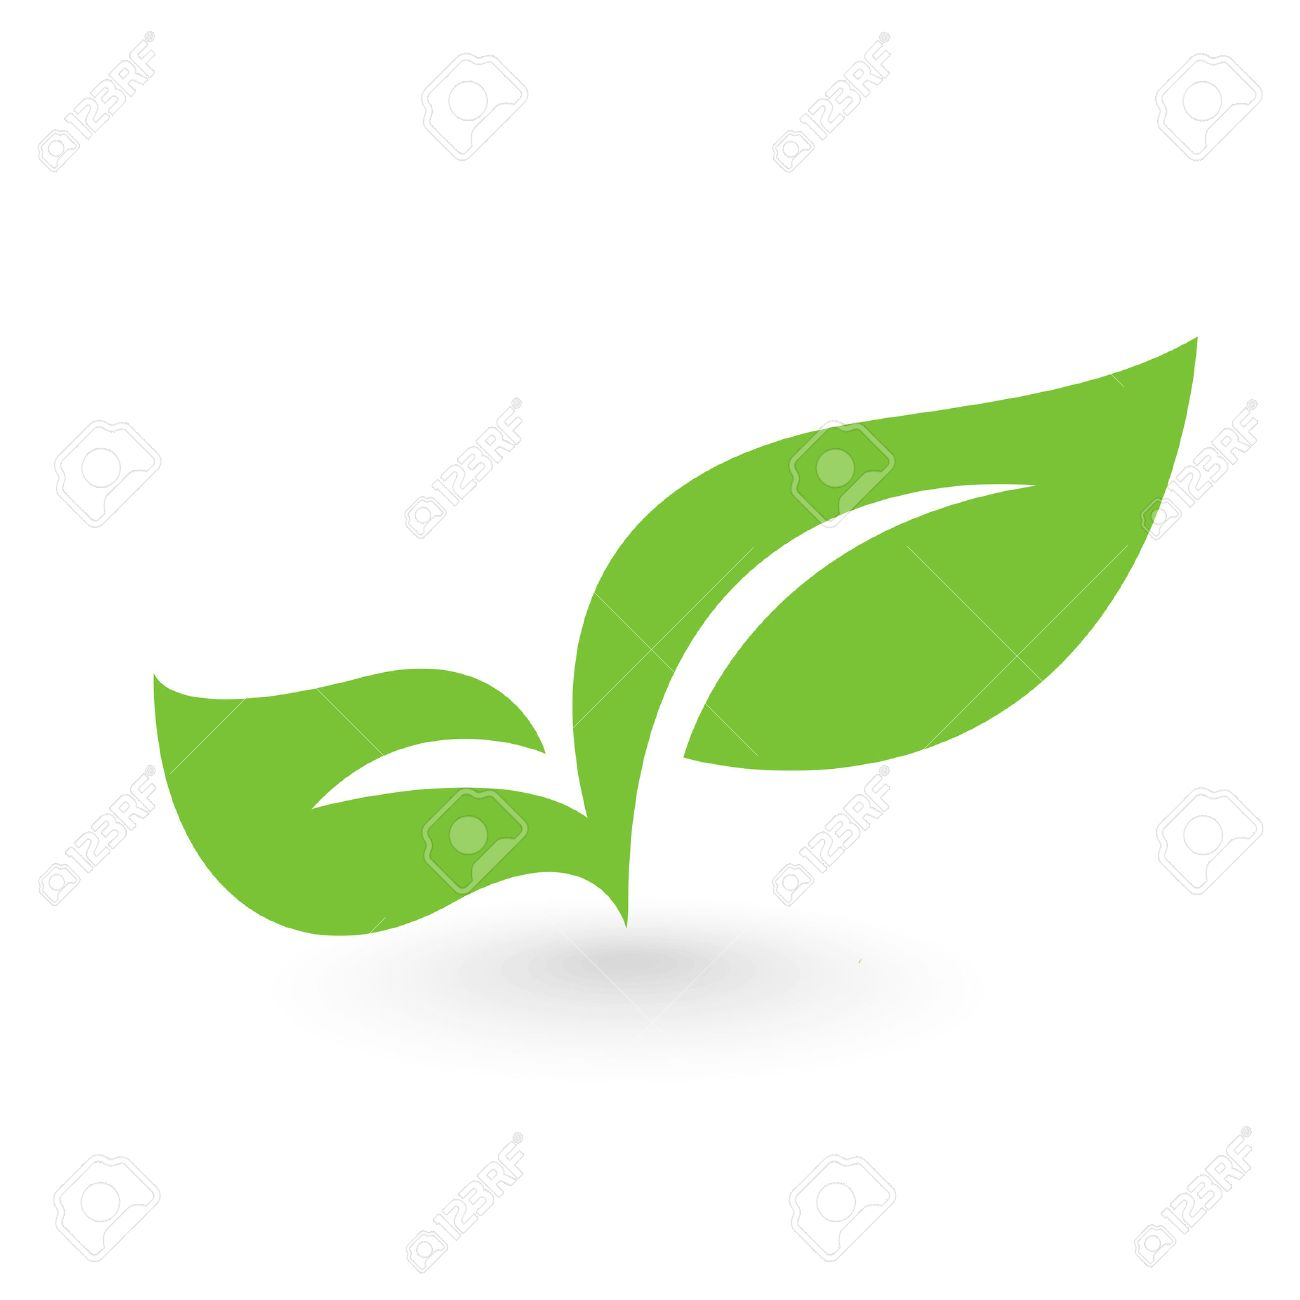 Abstract leafs care vector logo icon. Eco icon with green leaf - 50559159